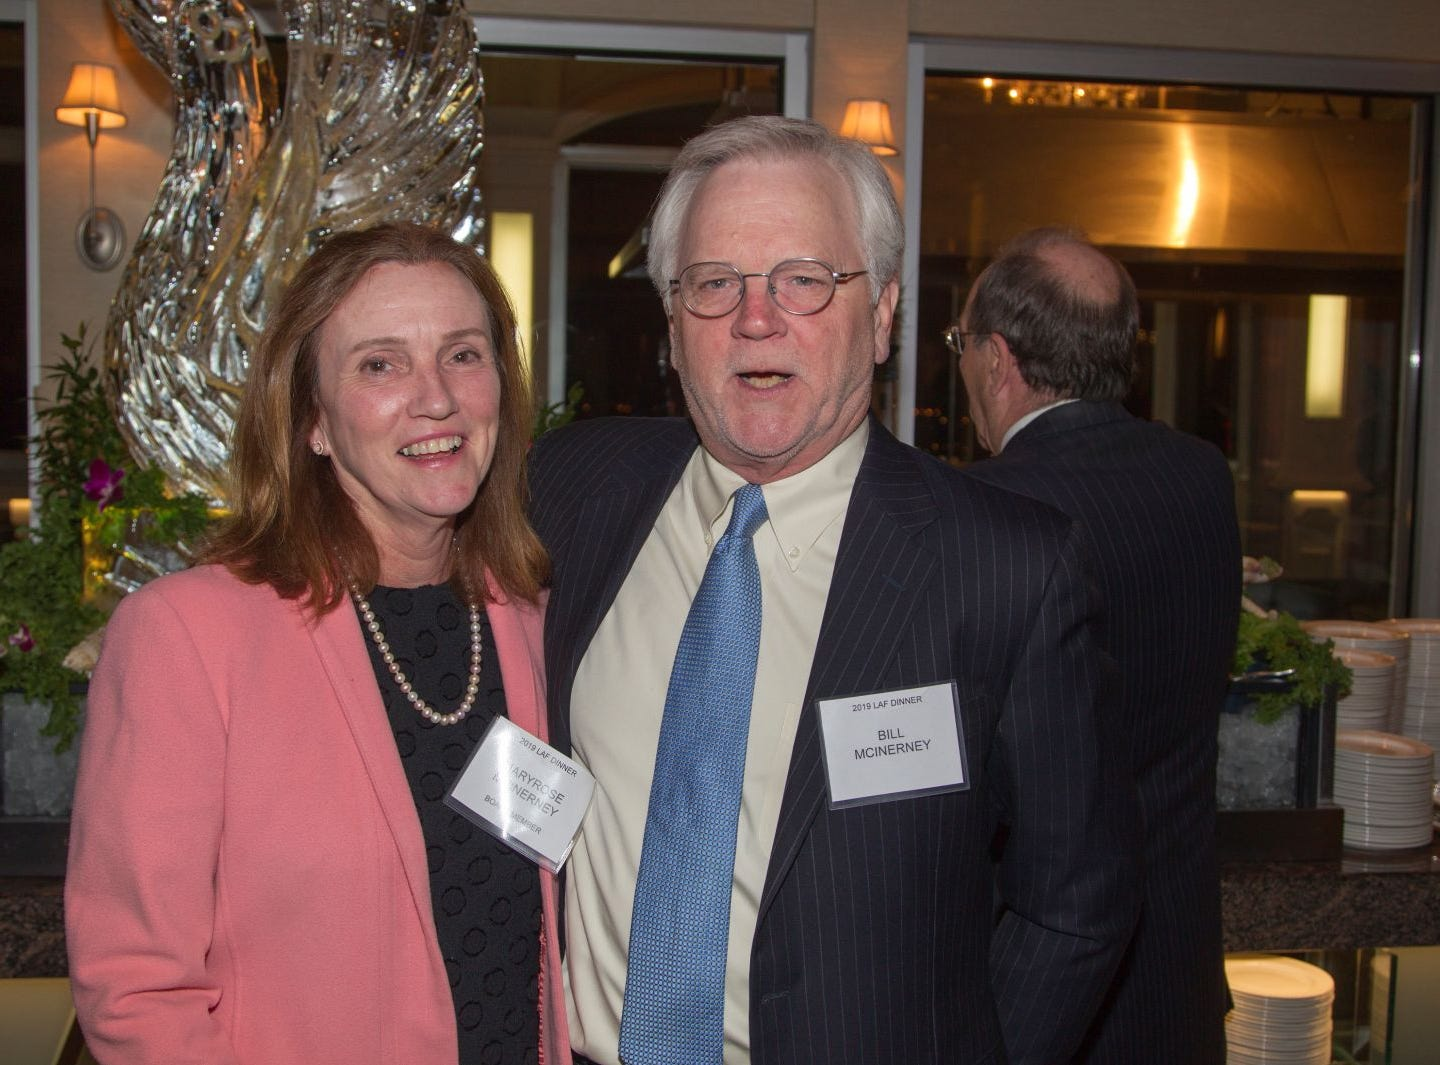 Maryrose McInerney, Bill McInerney. Eva's Village hosted its second annual Lawyers, Accountants and Financial Professionals Benefit Dinner at Westmount Country Club in Woodland Park. 02/21/2019